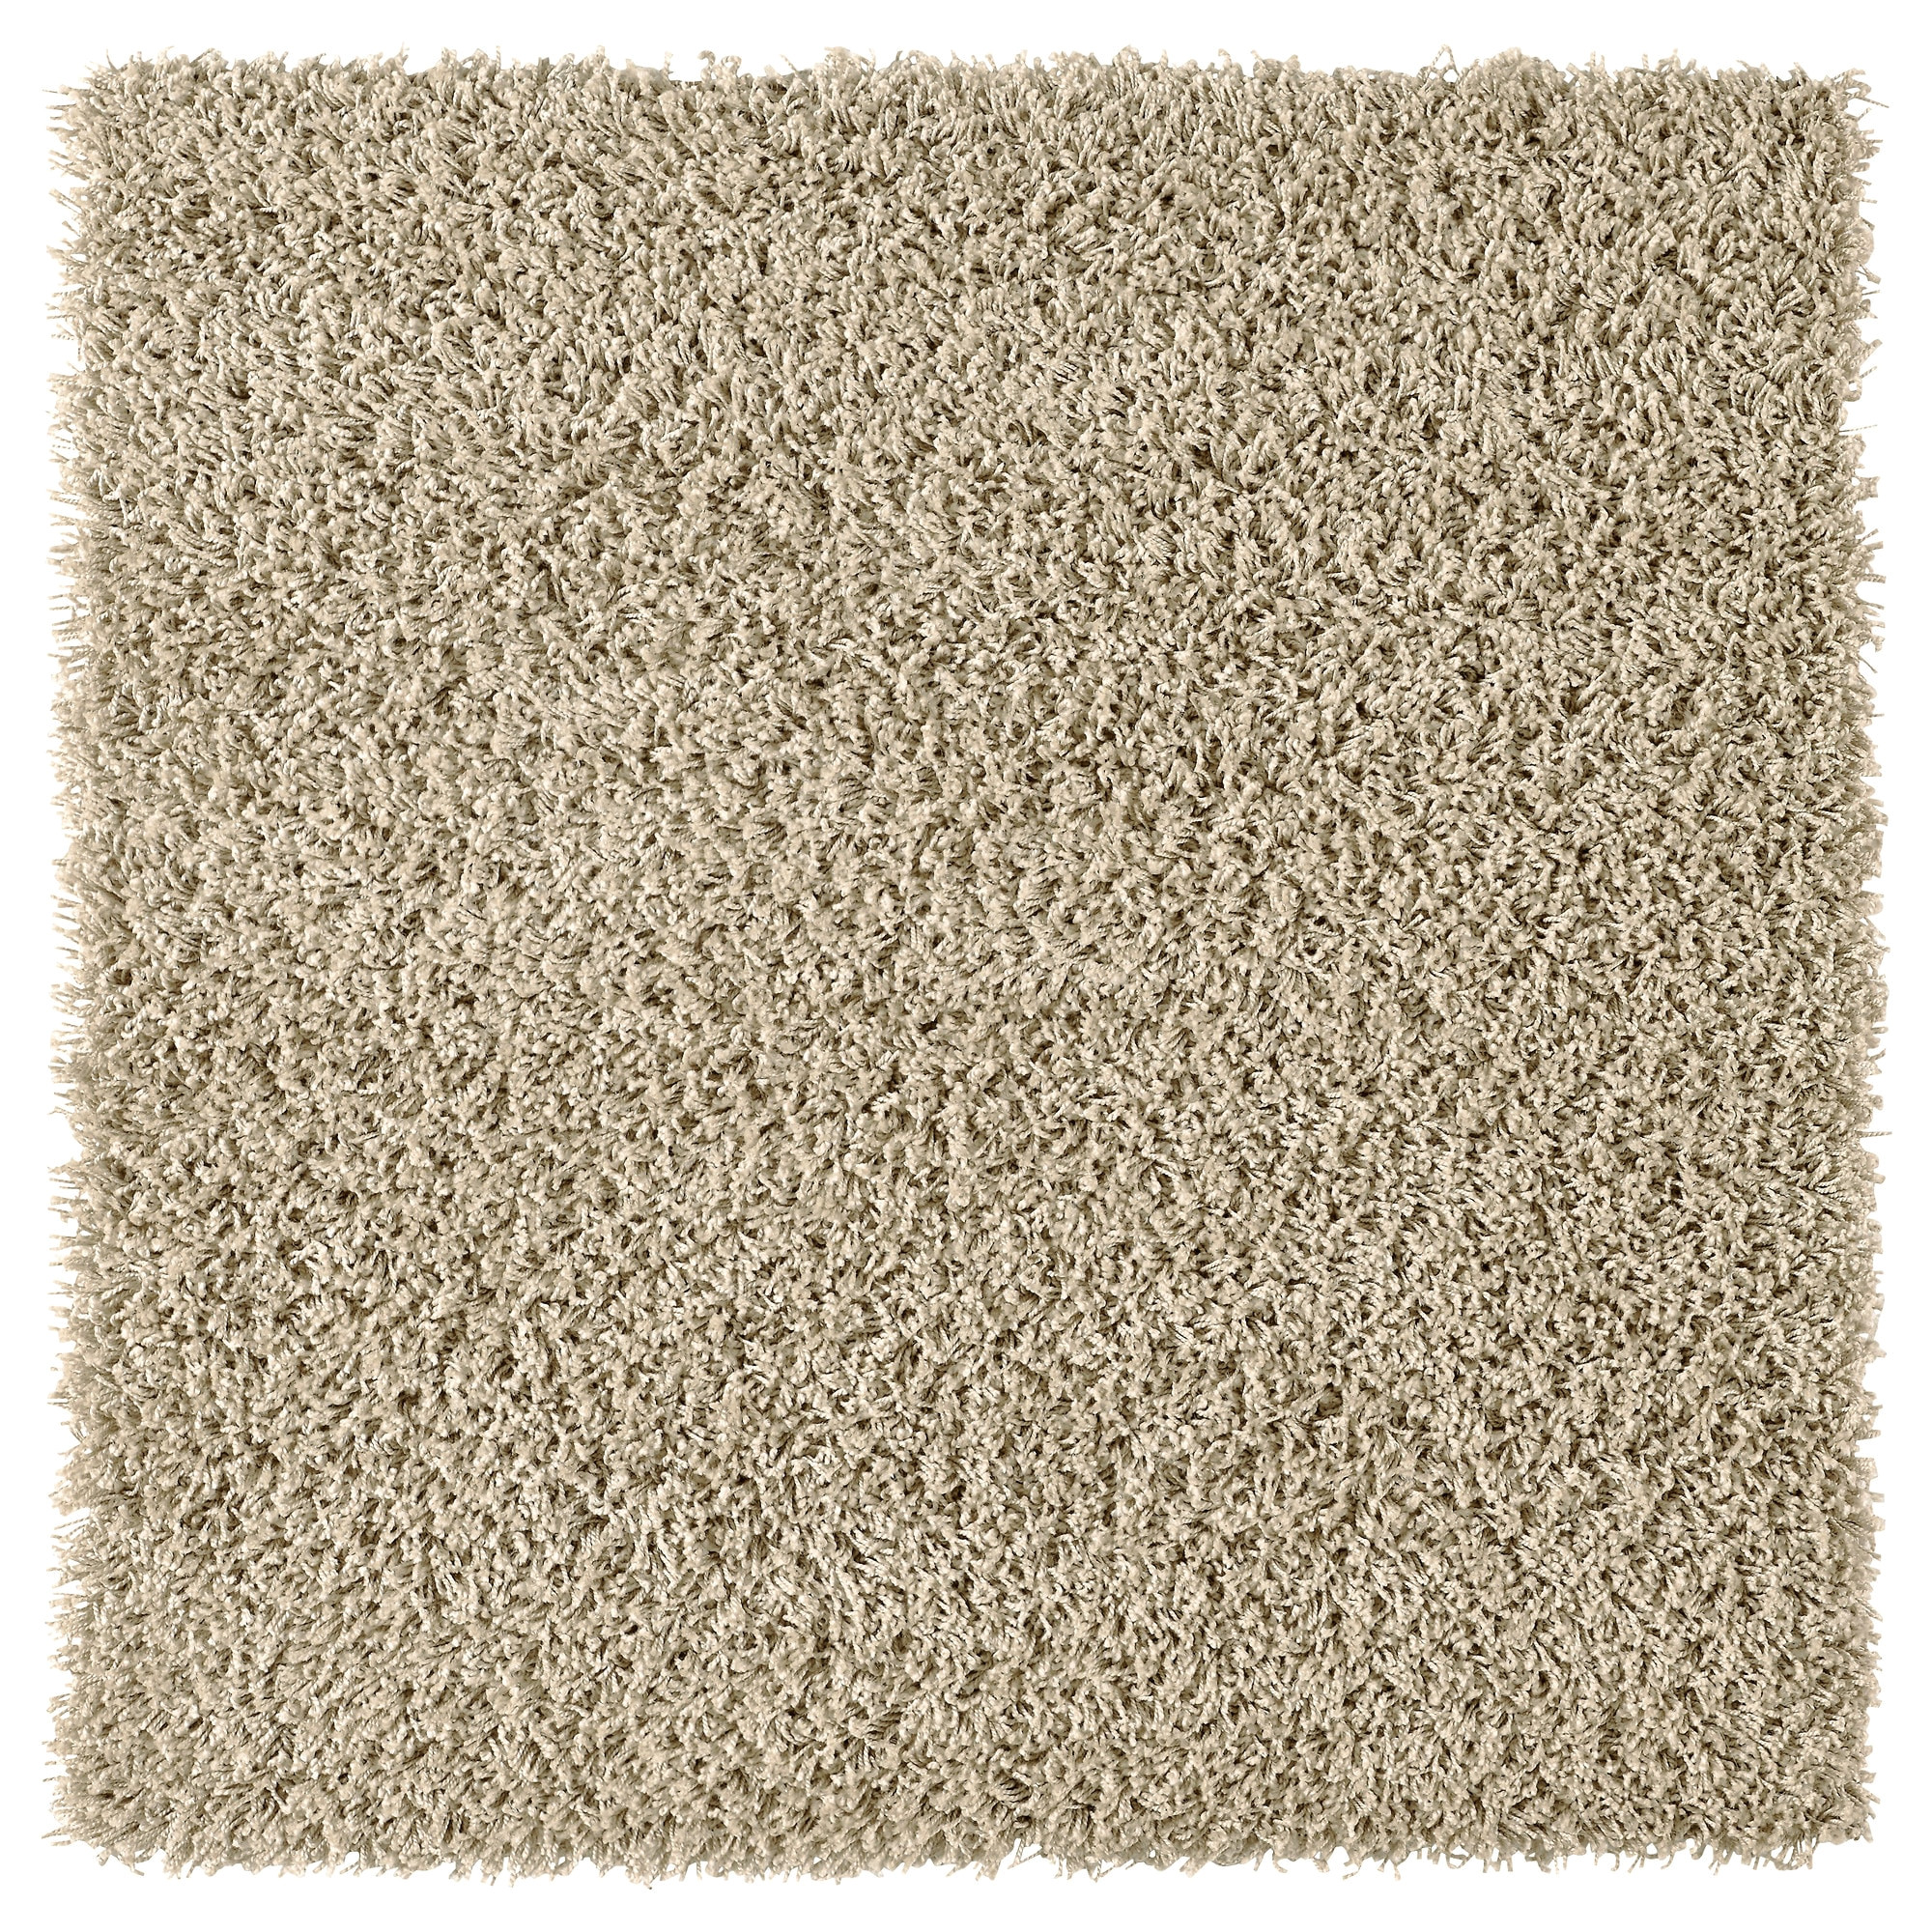 ikea hampen rug high pile the high pile makes it easy to join several rugs